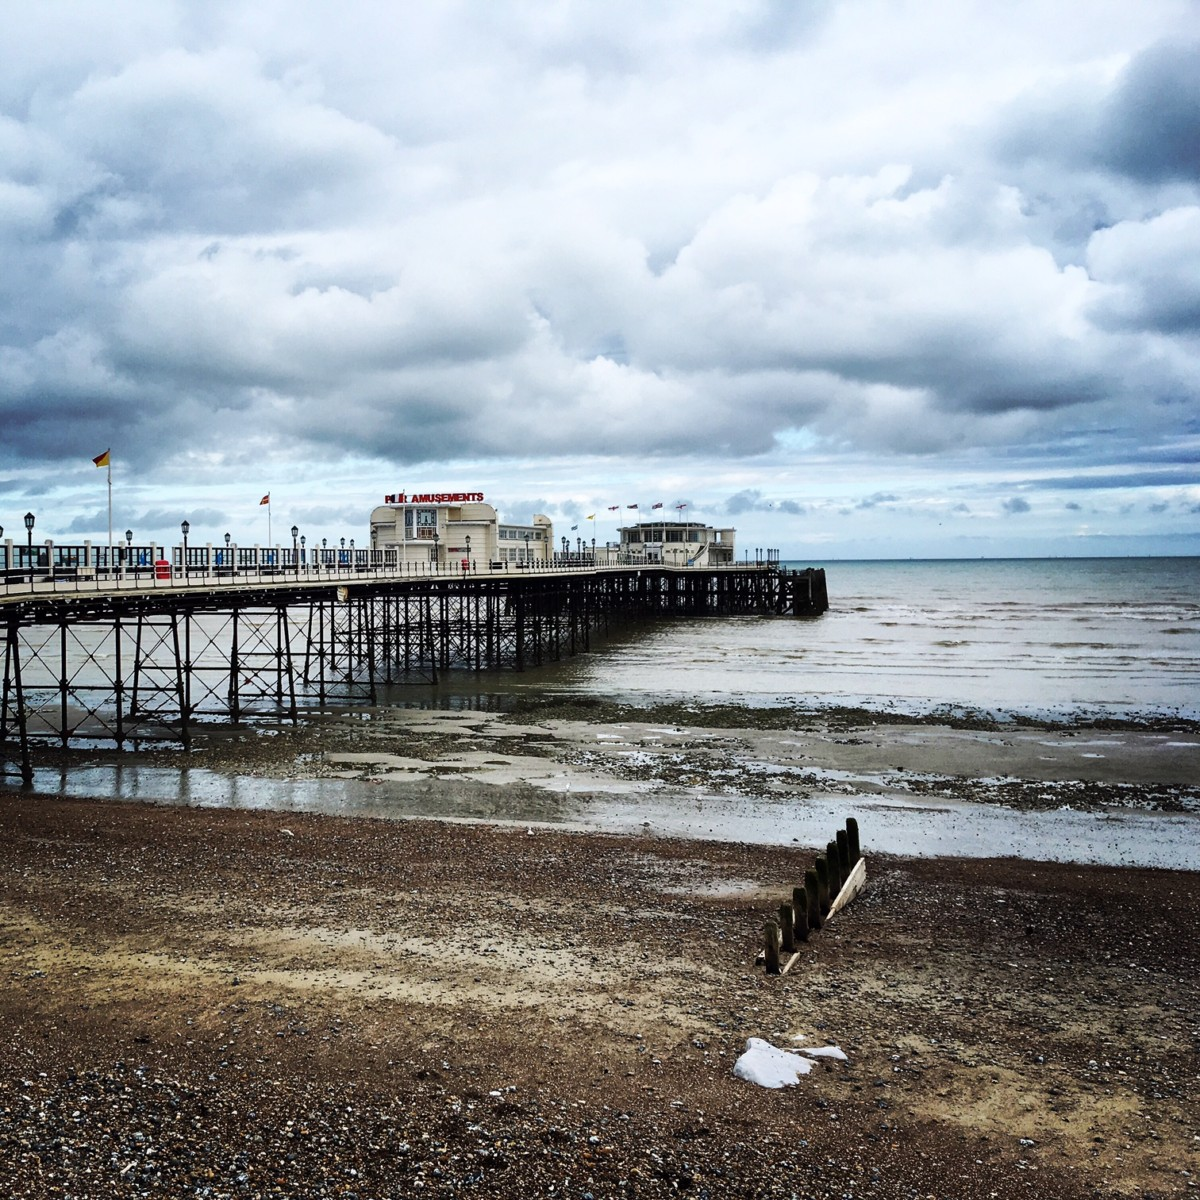 By the sea, West Sussex UK, pier with Seen by Solomon travel blog